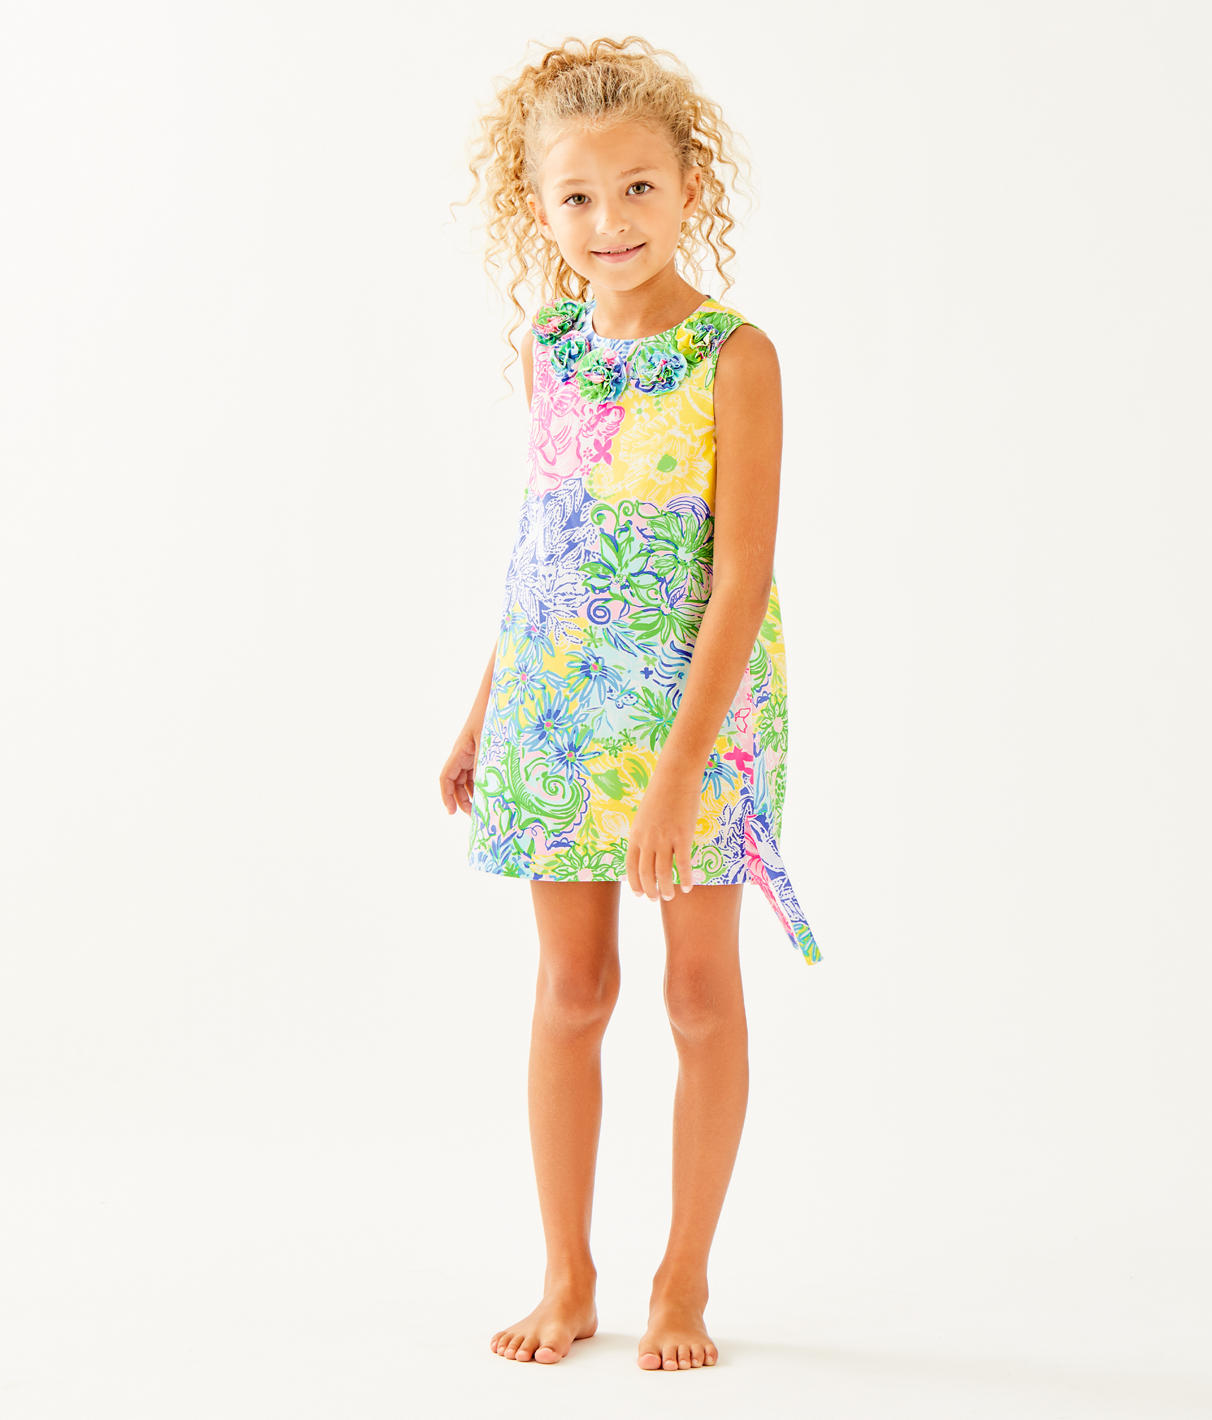 79ce40c9ed6cea LITTLE LILLY CLASSIC SHIFT - CHEEK TO CHEEK - Lilly Pulitzer Store ...